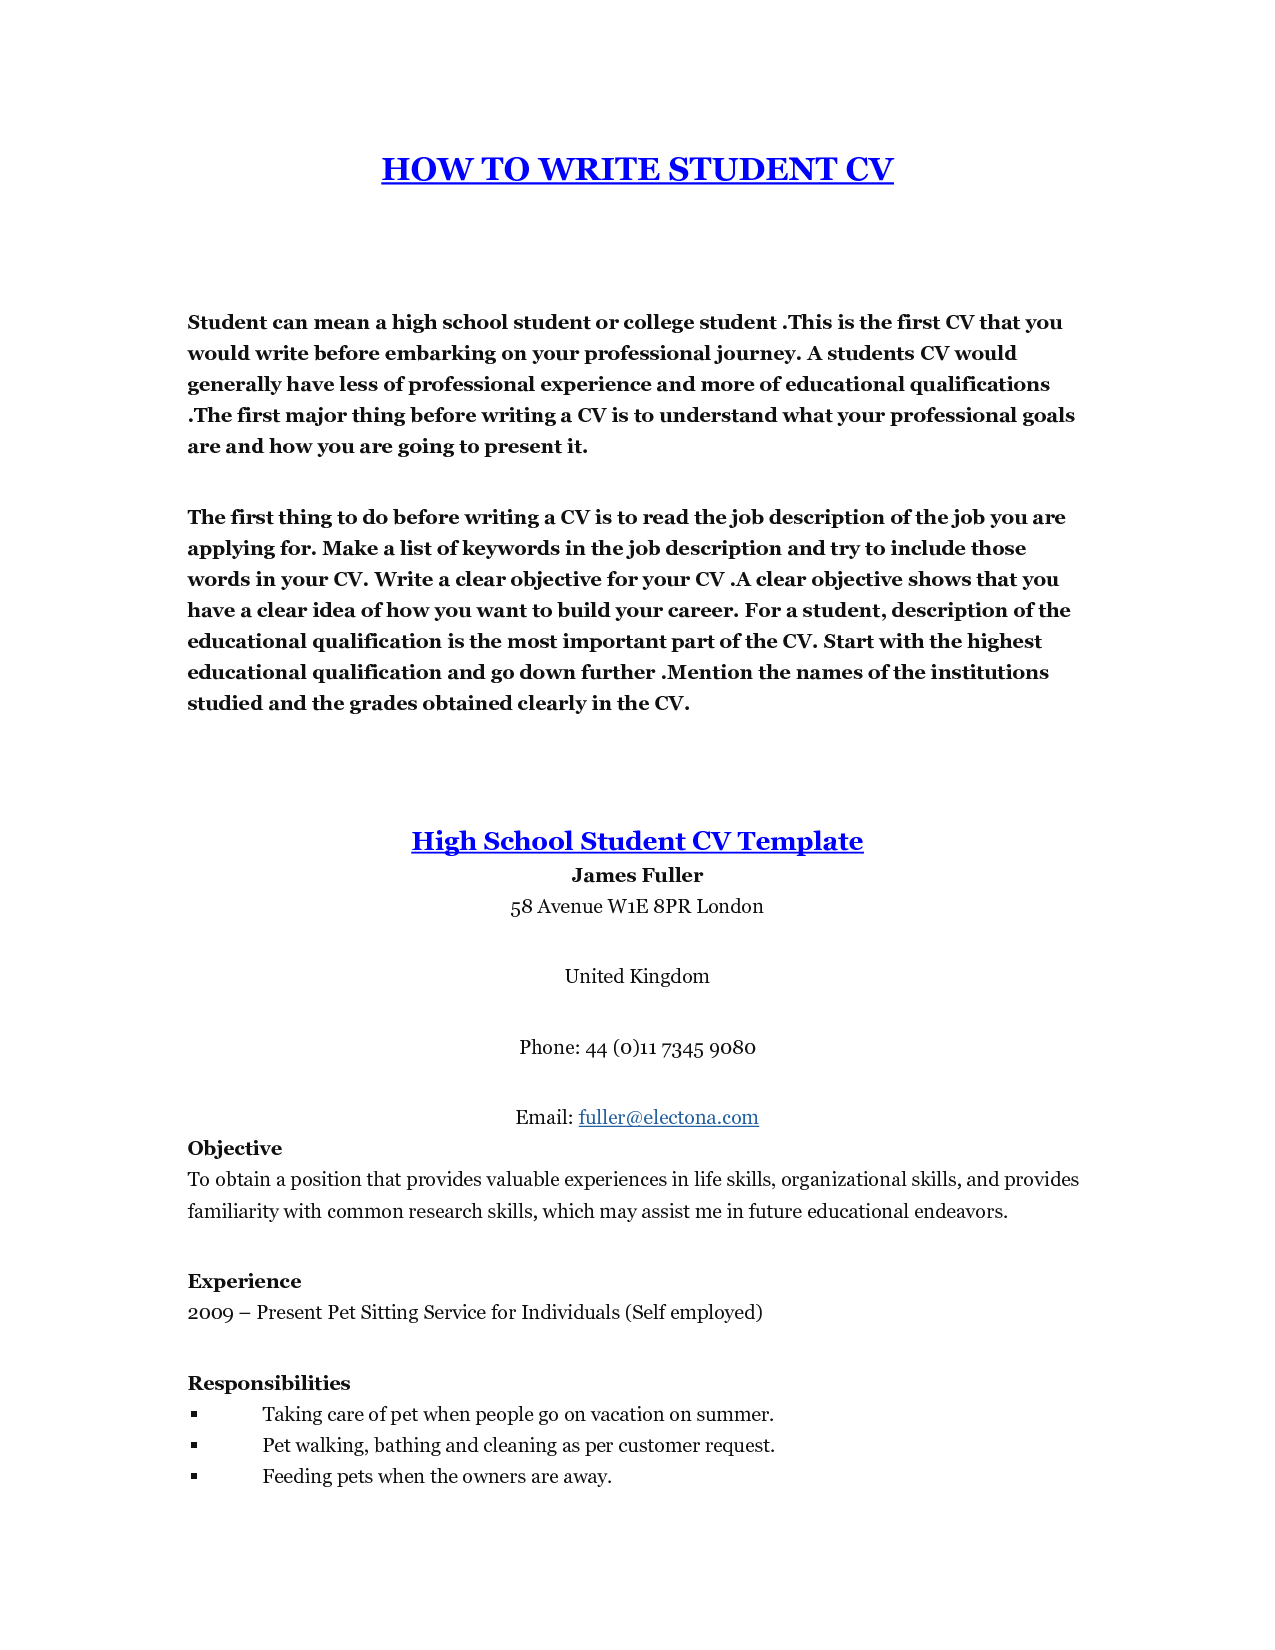 Research Skills Resume Student Resume Template  Httpwwwjobresumewebsitestudent